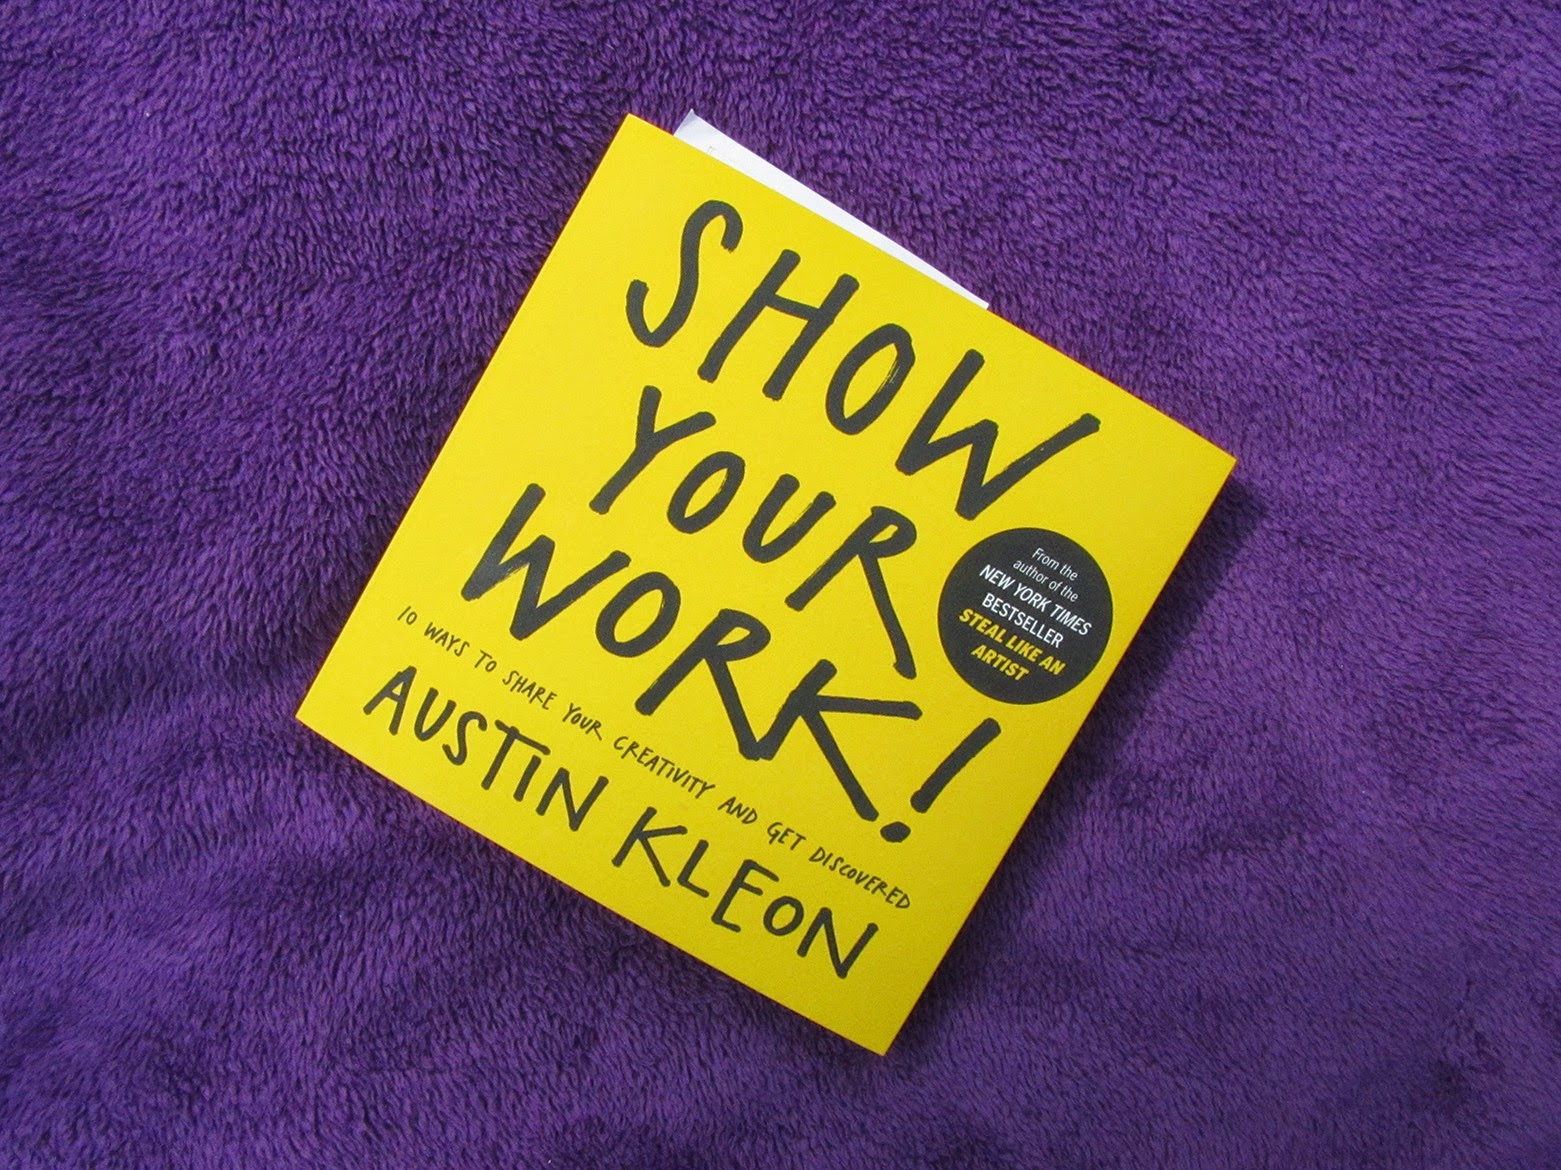 Show your work, by Austin Kleon